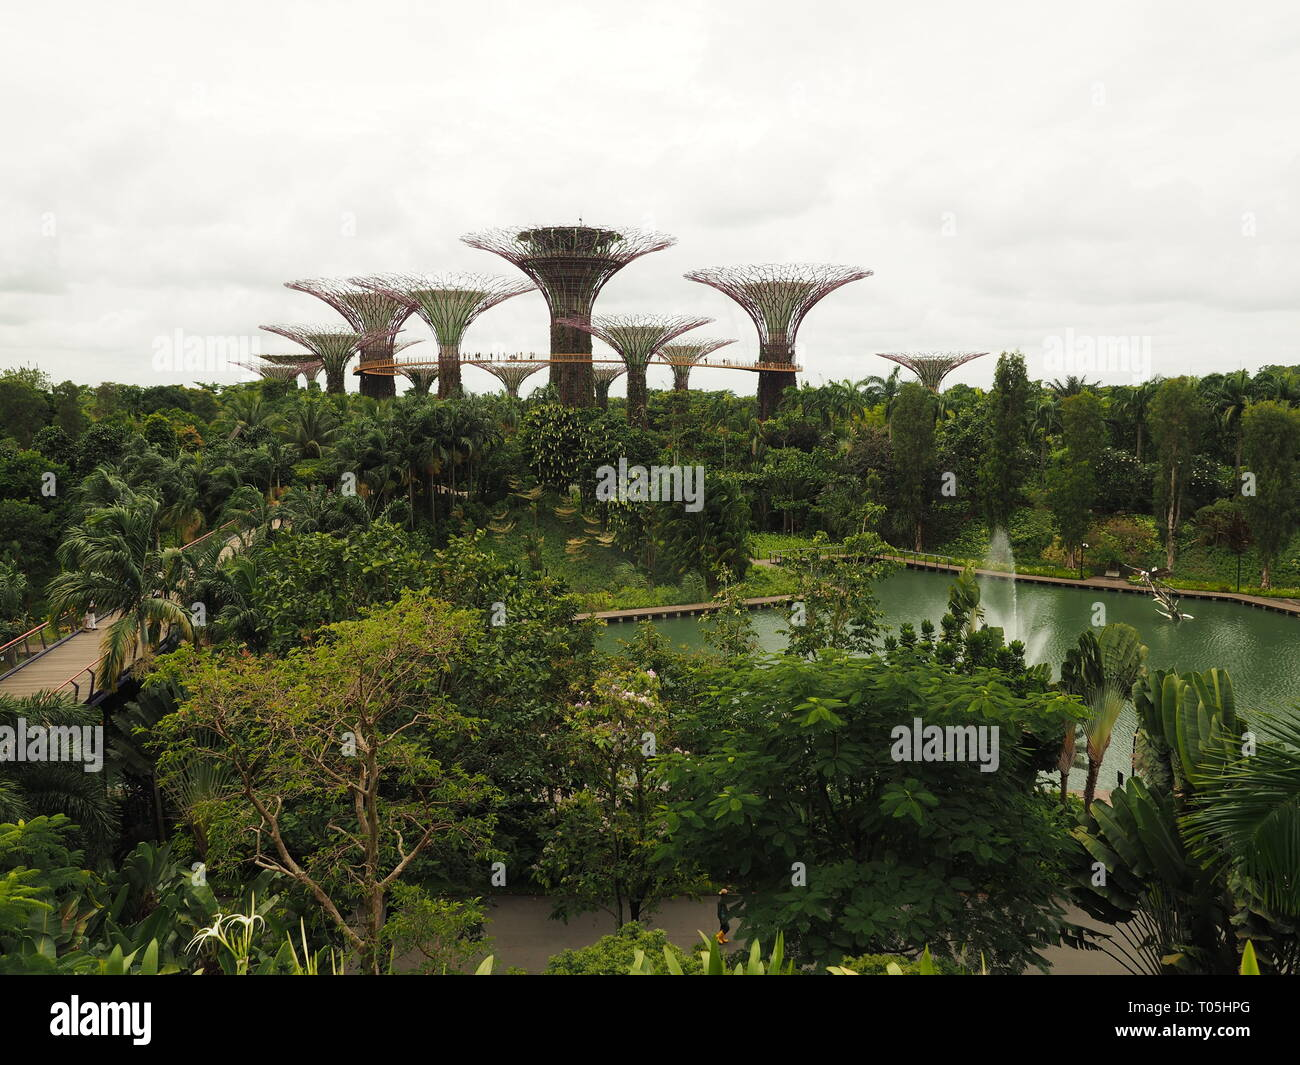 Singapore Gardens by the Bay - by Jana Reutin - Stock Image